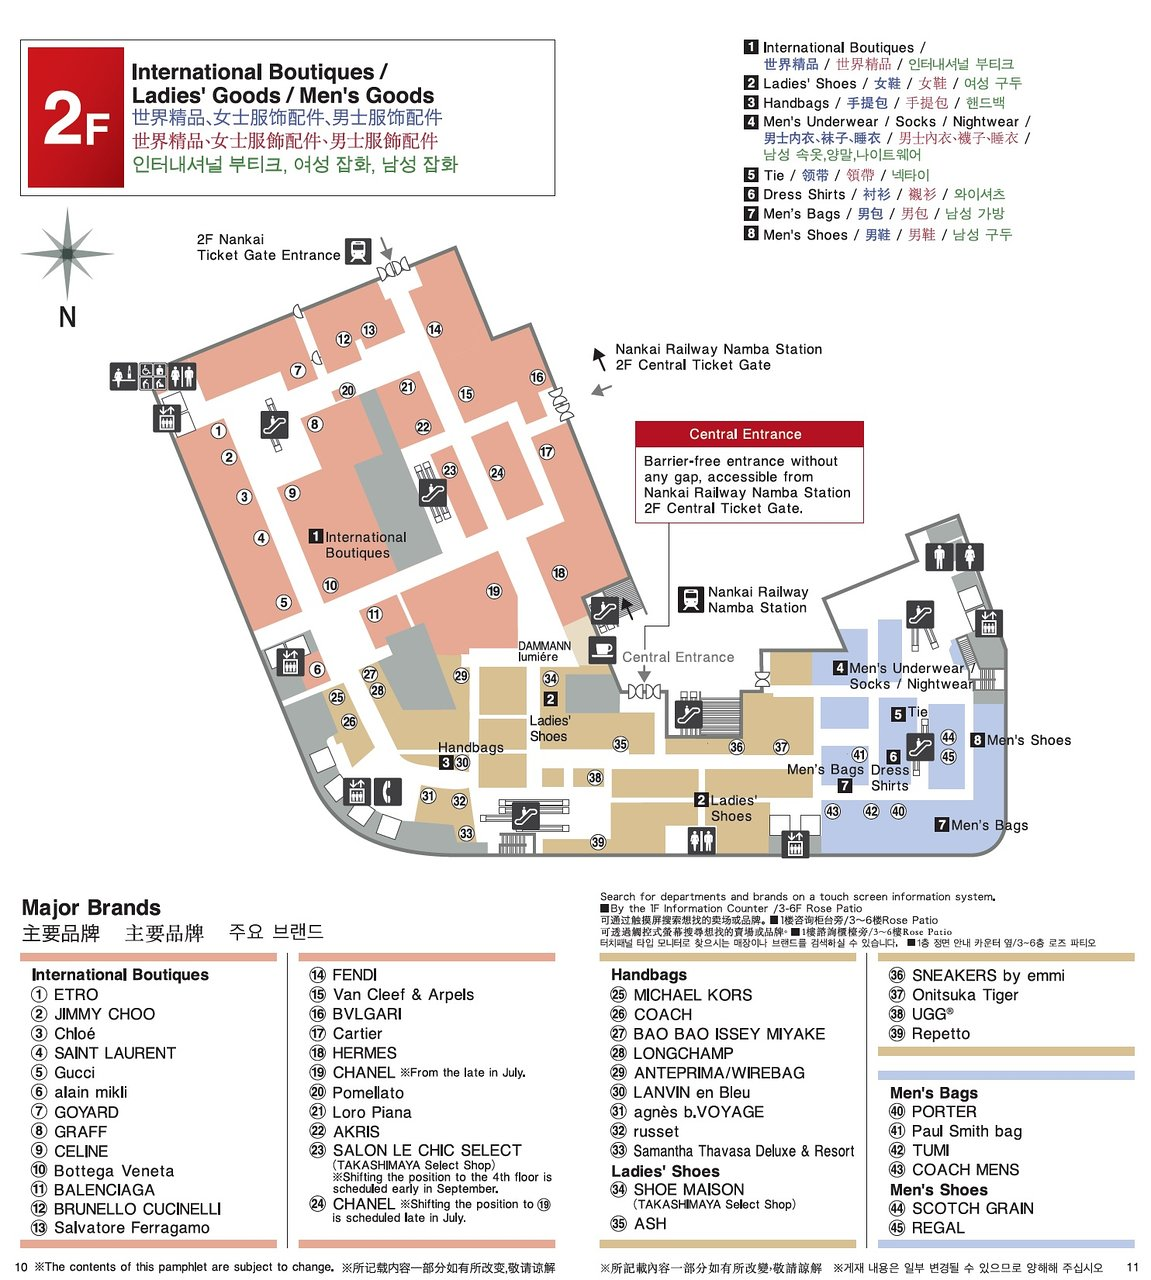 Takashimaya Osaka Store 2018 All You Need To Know Before Go Voucher Keihan Kyoto Sightseeing Pass 1 Day 3 Of 8 Photos